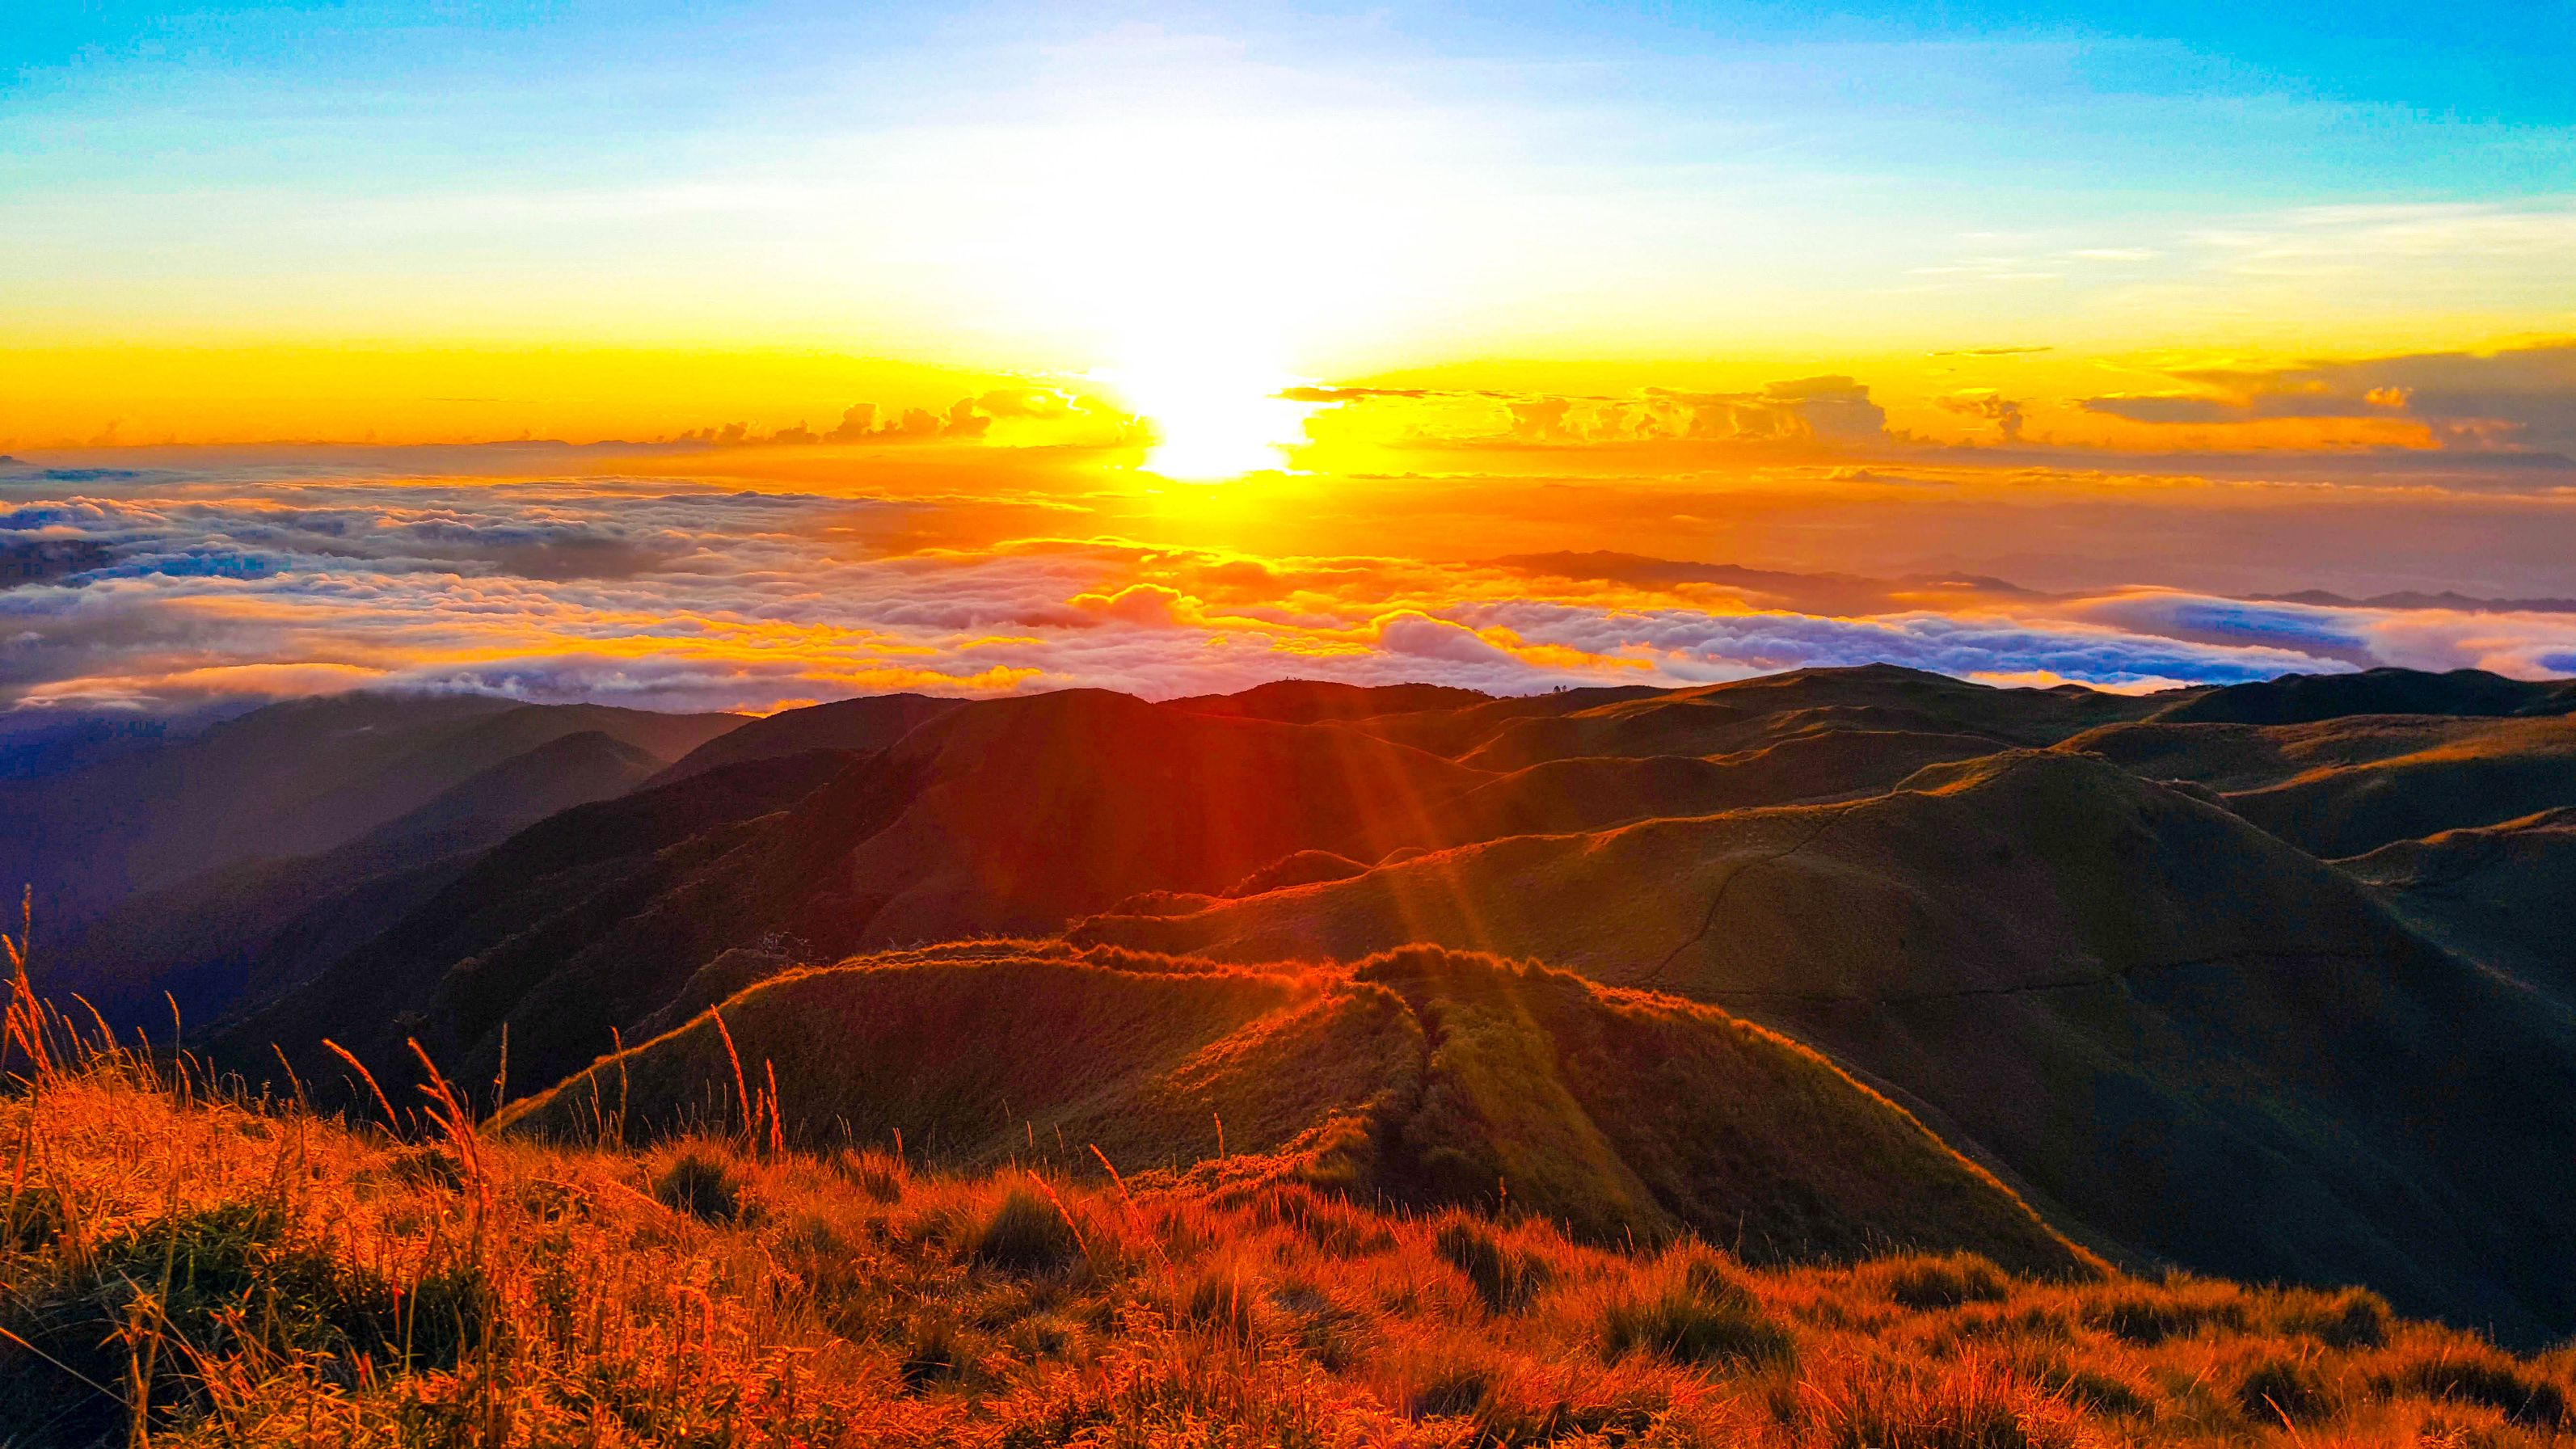 Sun rises above a sea of clouds on Mount Pulag, Philippines